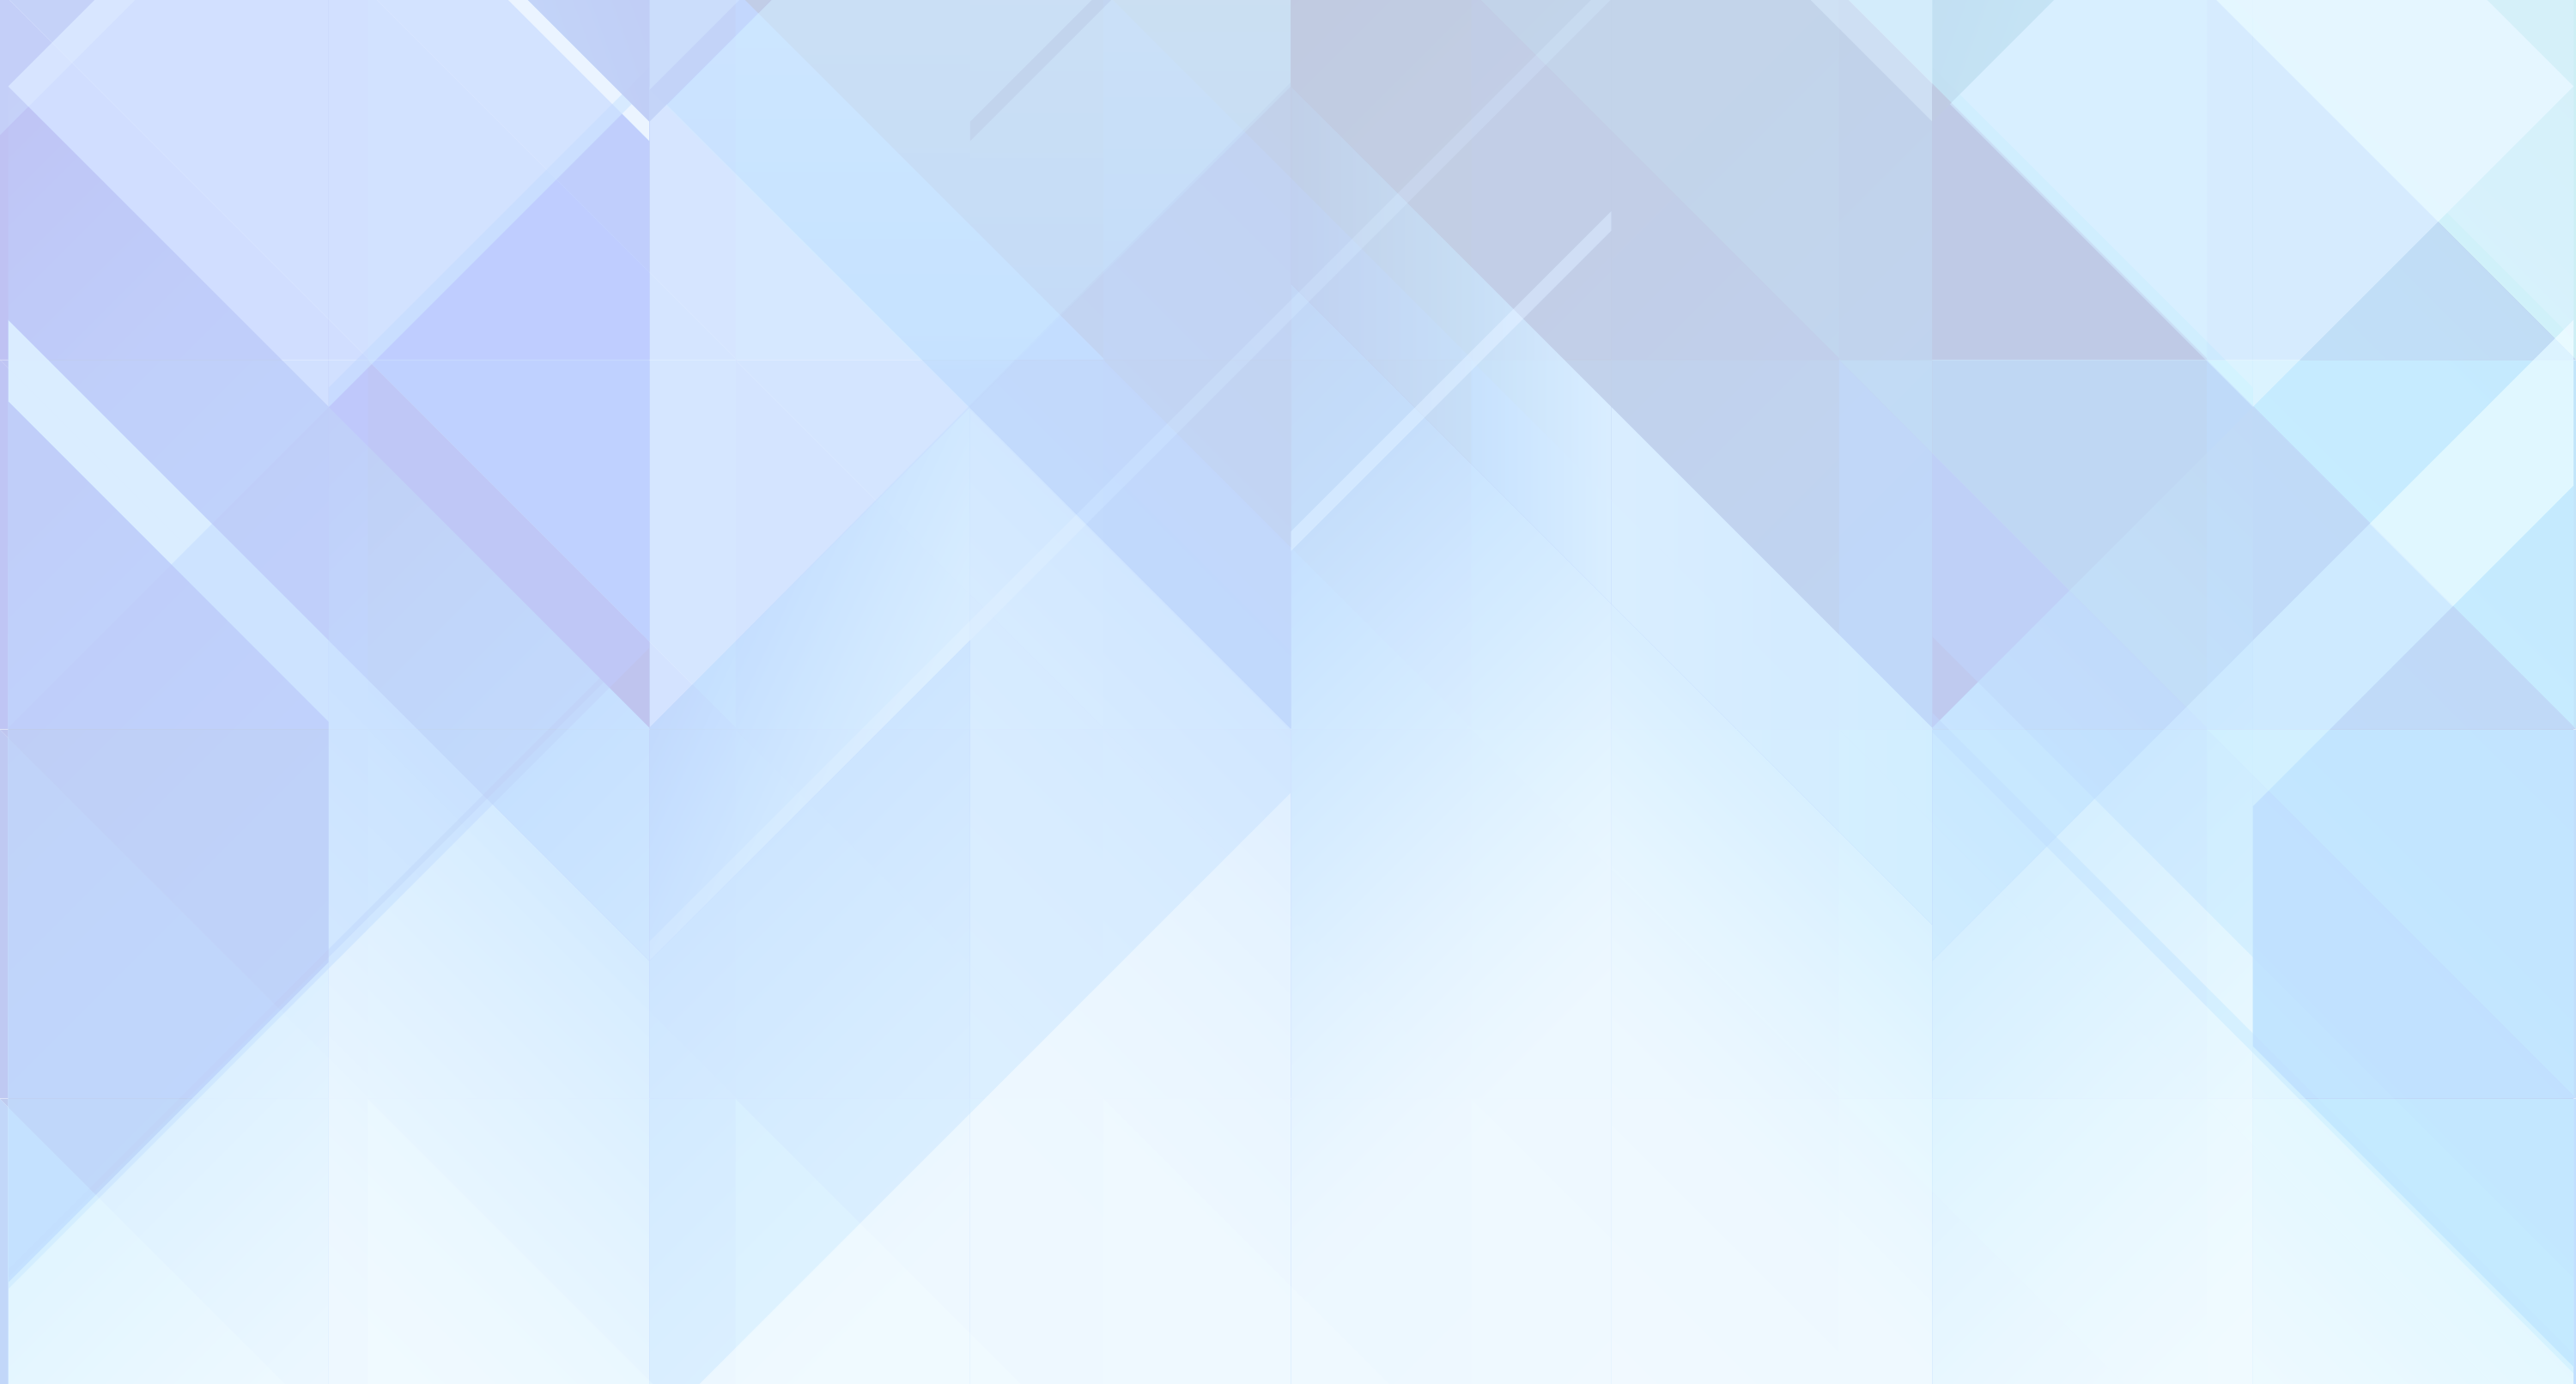 Abstract background png. Transparent check all